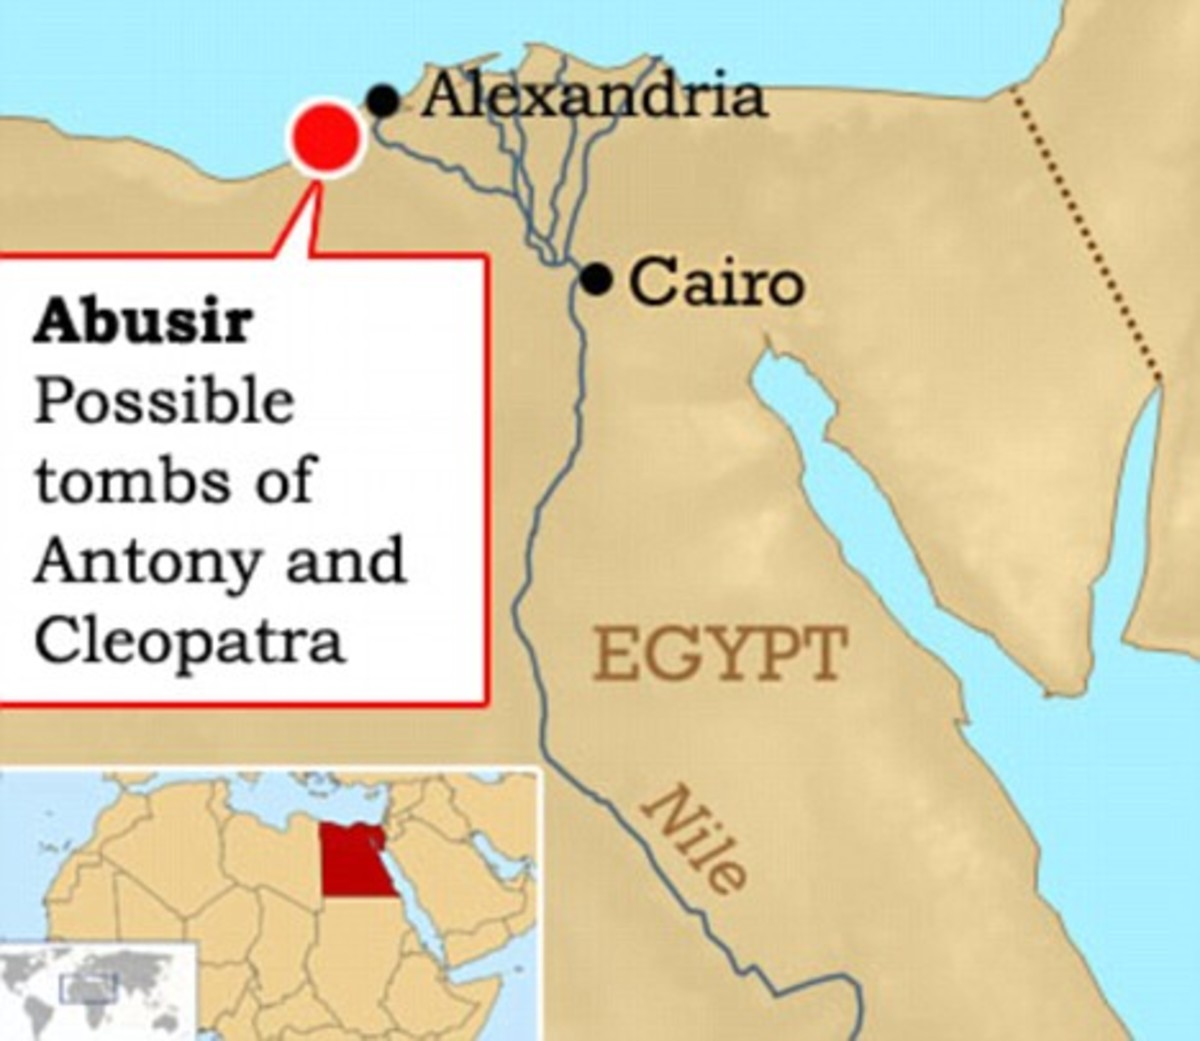 POssible Tombs of Cleopatra and Antony